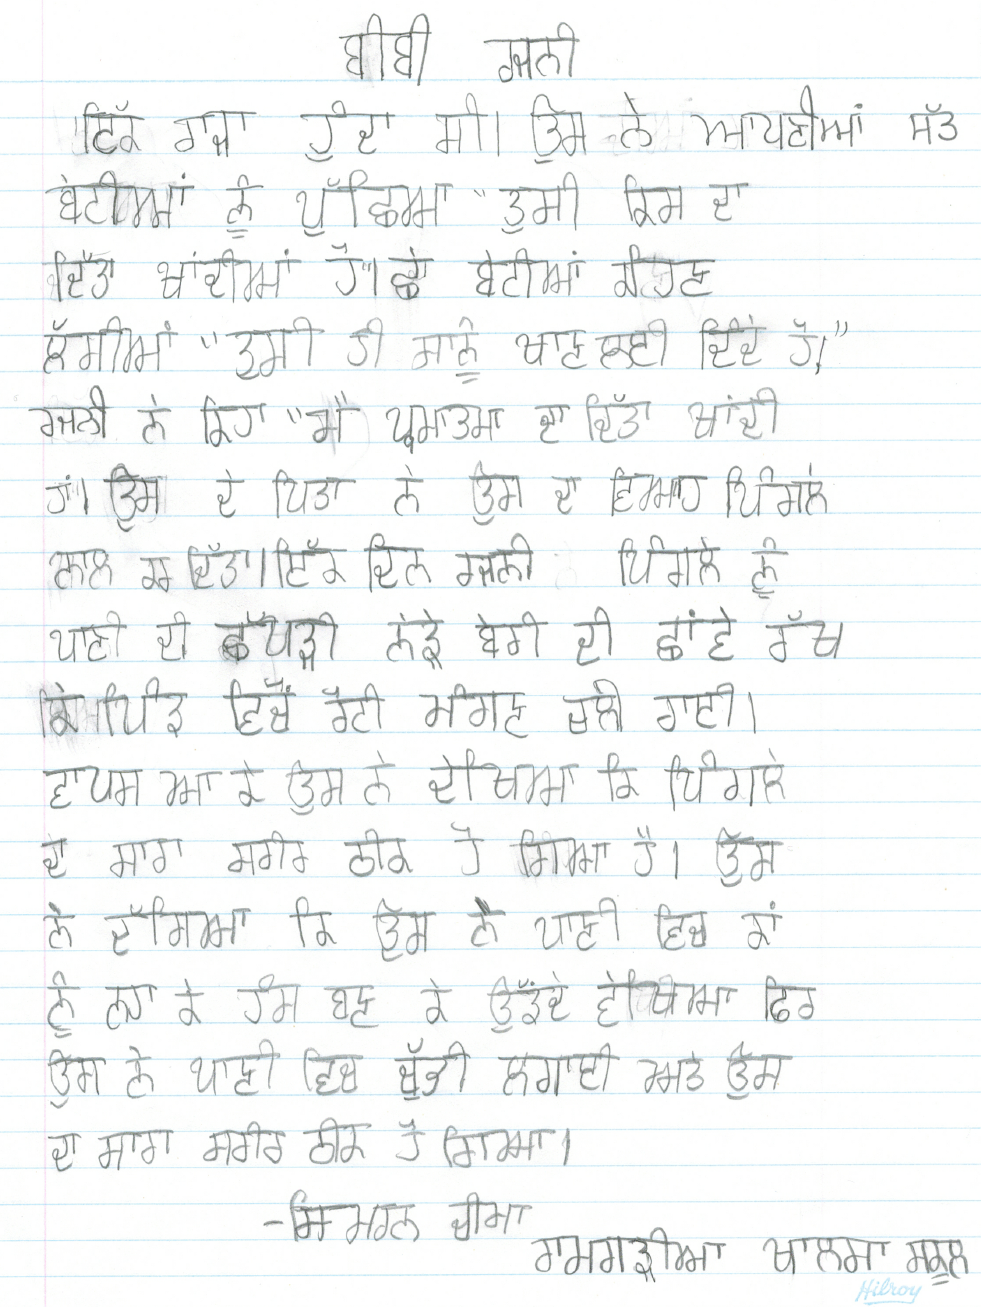 corruption in india essay in punjabi language